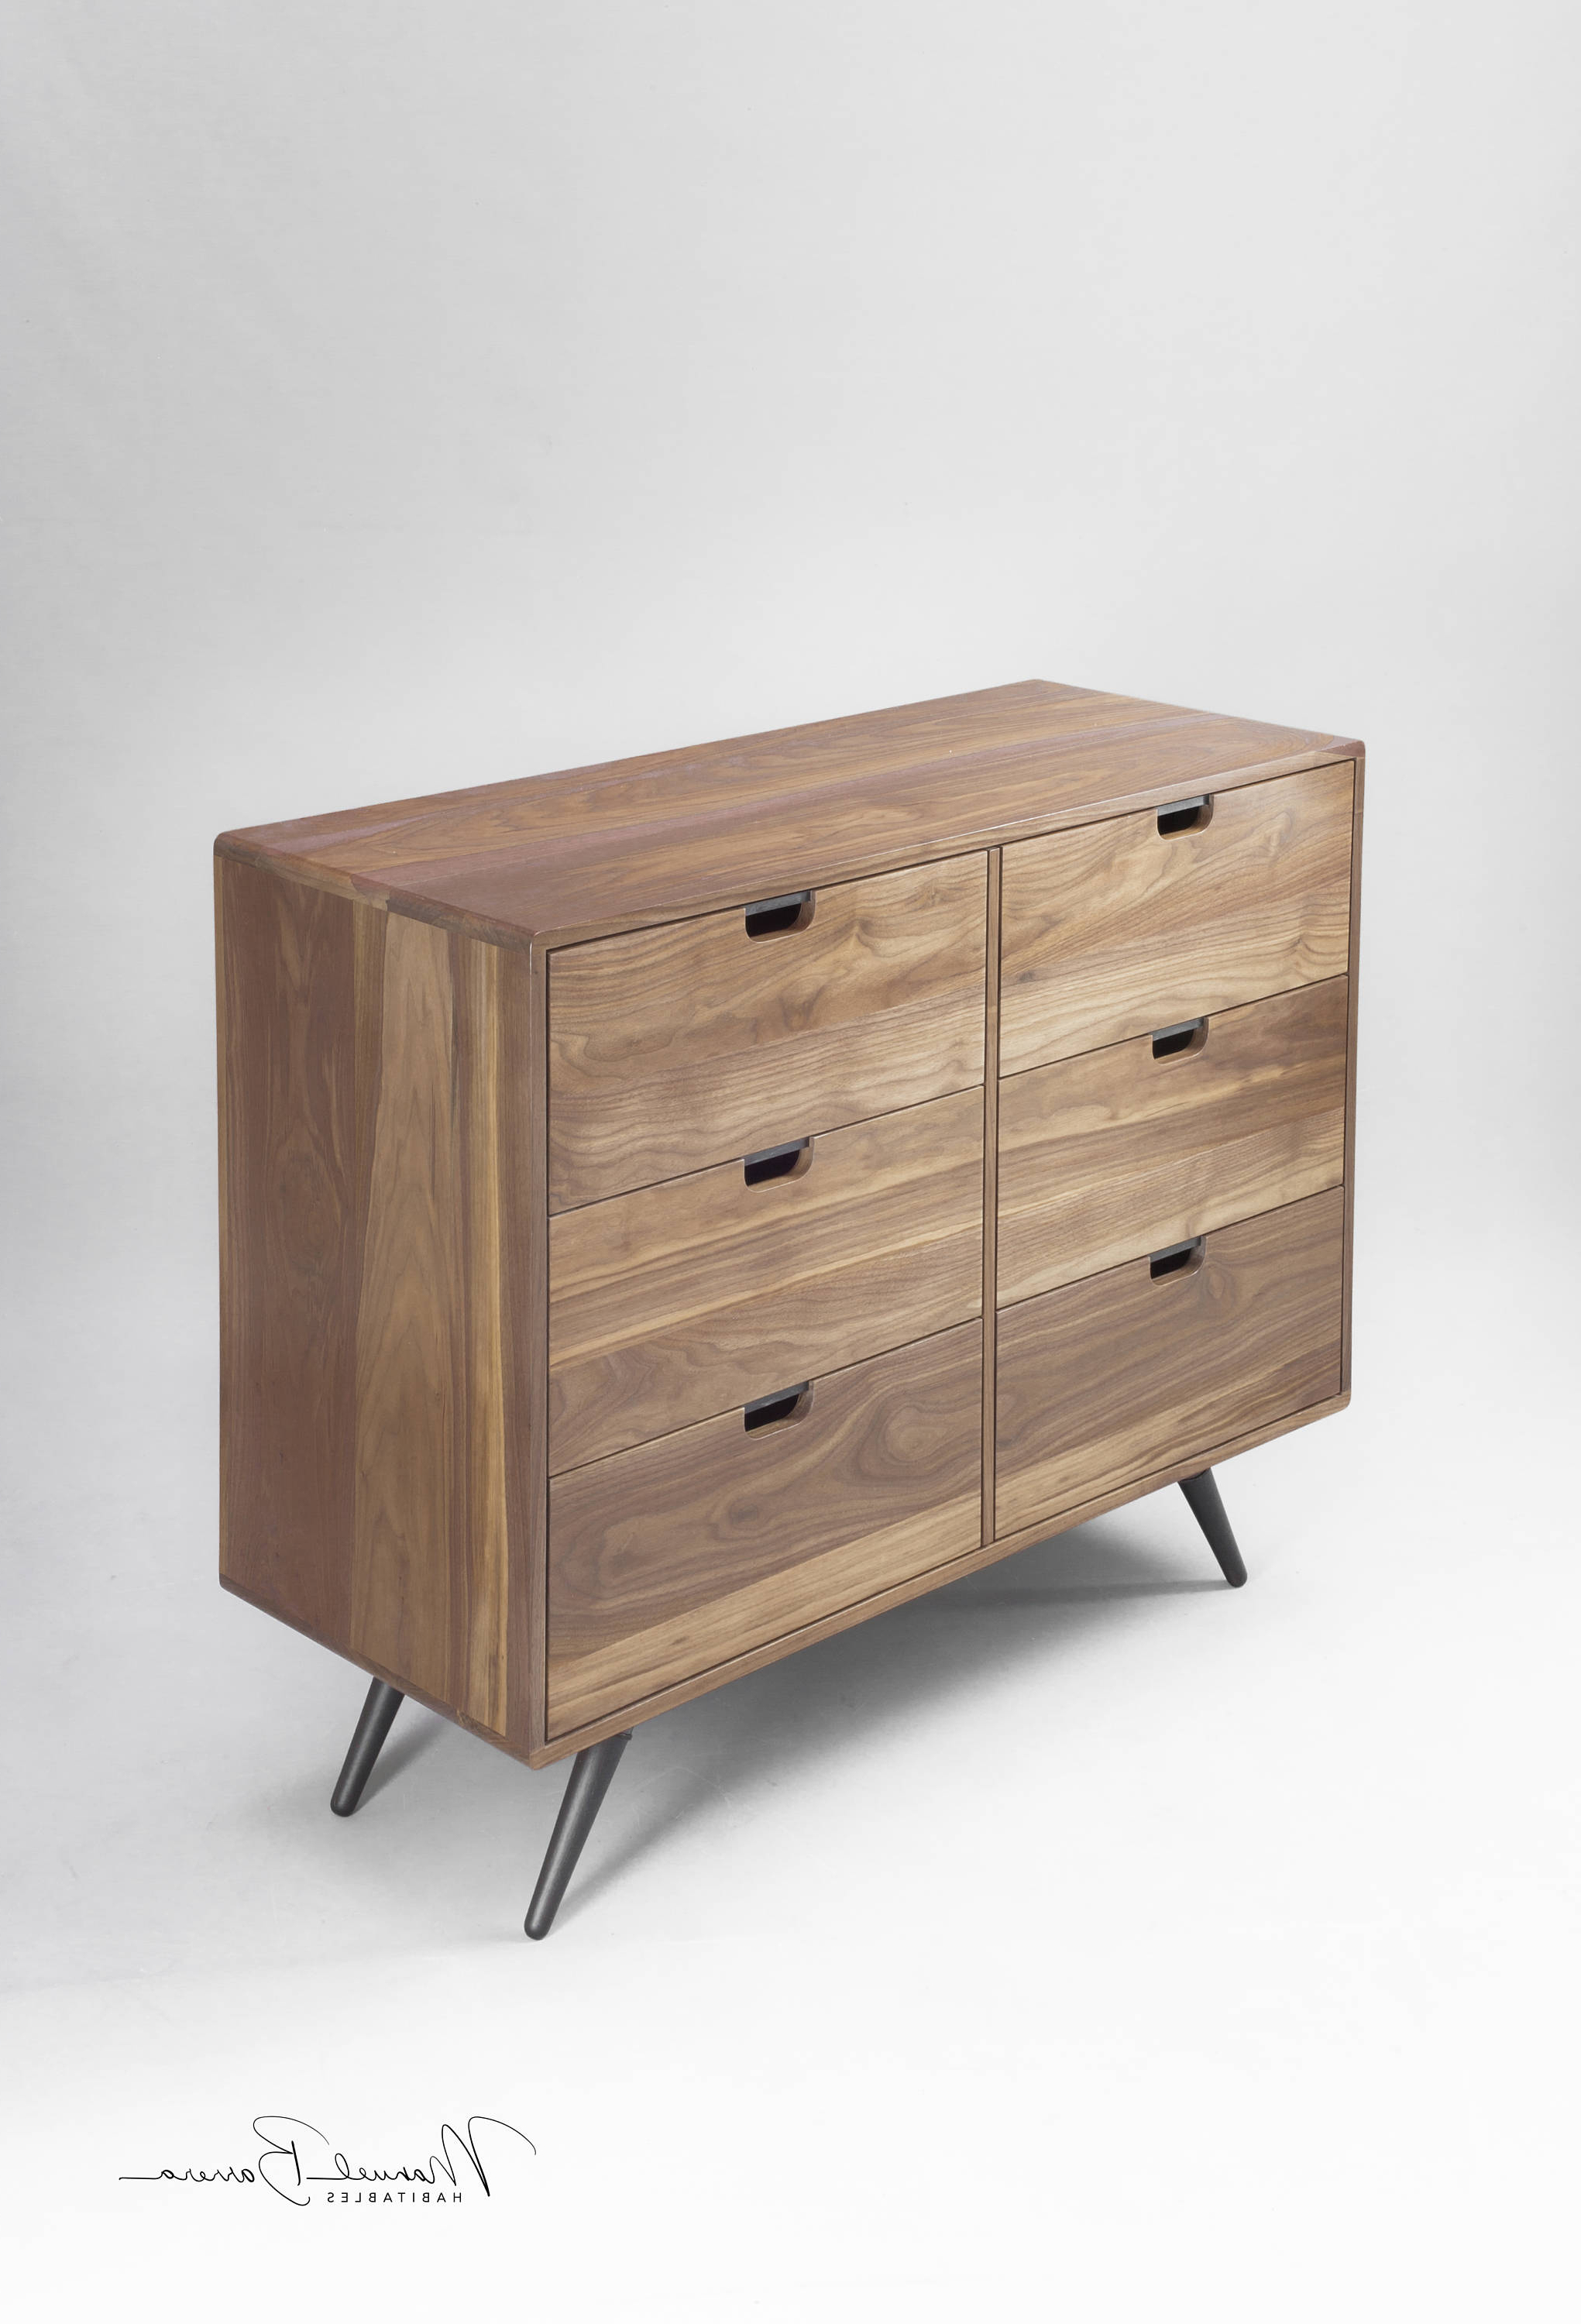 Walnut Dresser, Commode, Credenza In Oak / Walnut Solid Intended For Ocean Marble Credenzas (View 20 of 20)